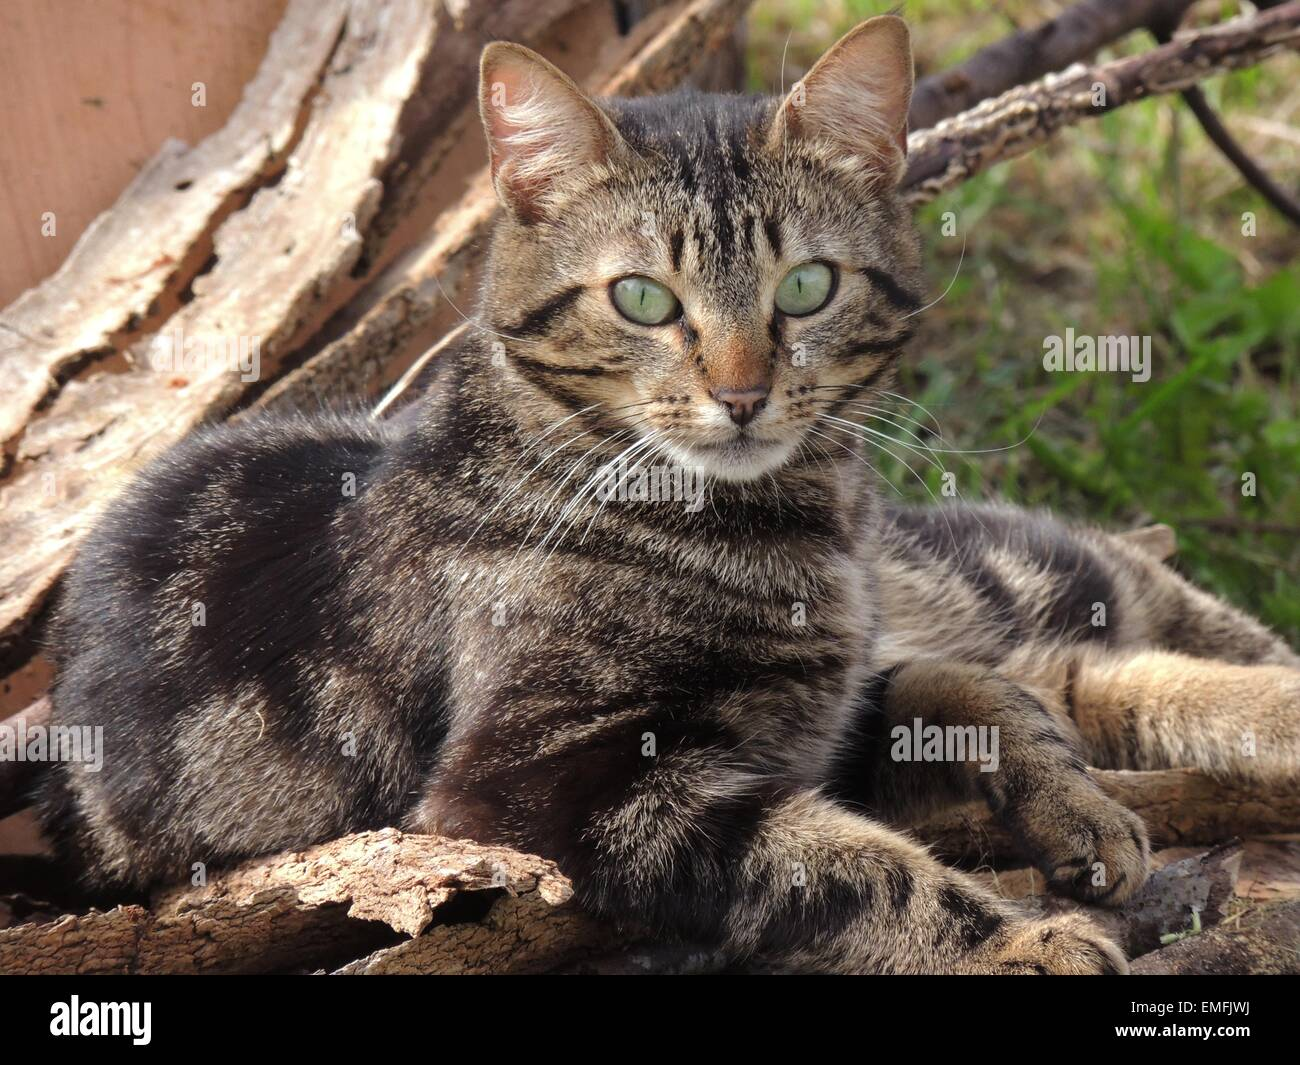 Close up front view of a tabby cat outside - Stock Image